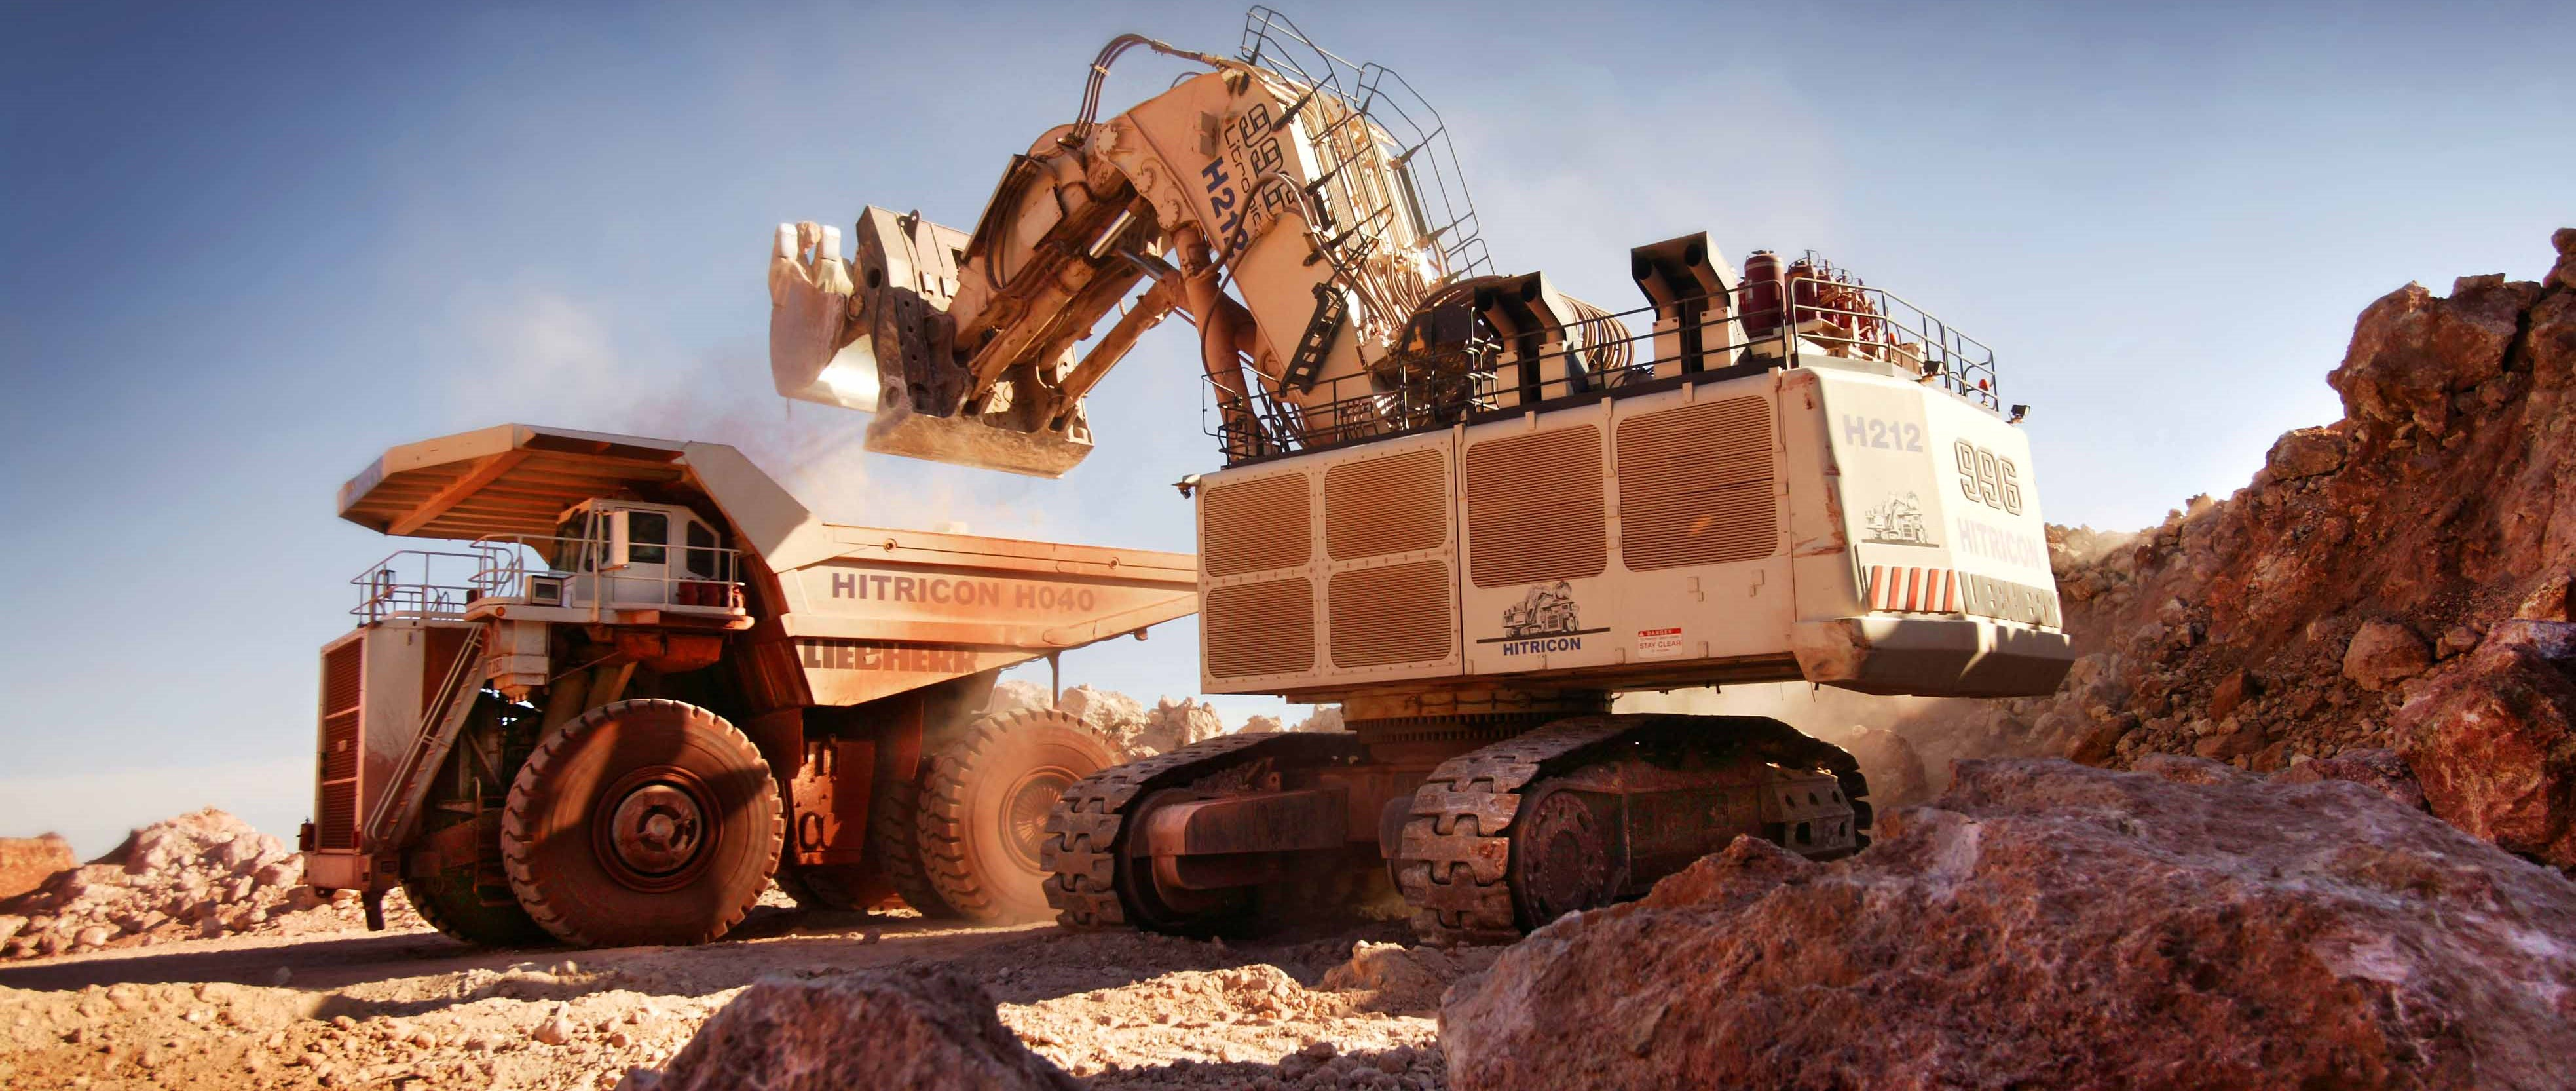 Trade Assistant Mining Peak Downs Operators Mackay QLD-iMINCO.net Mining Information